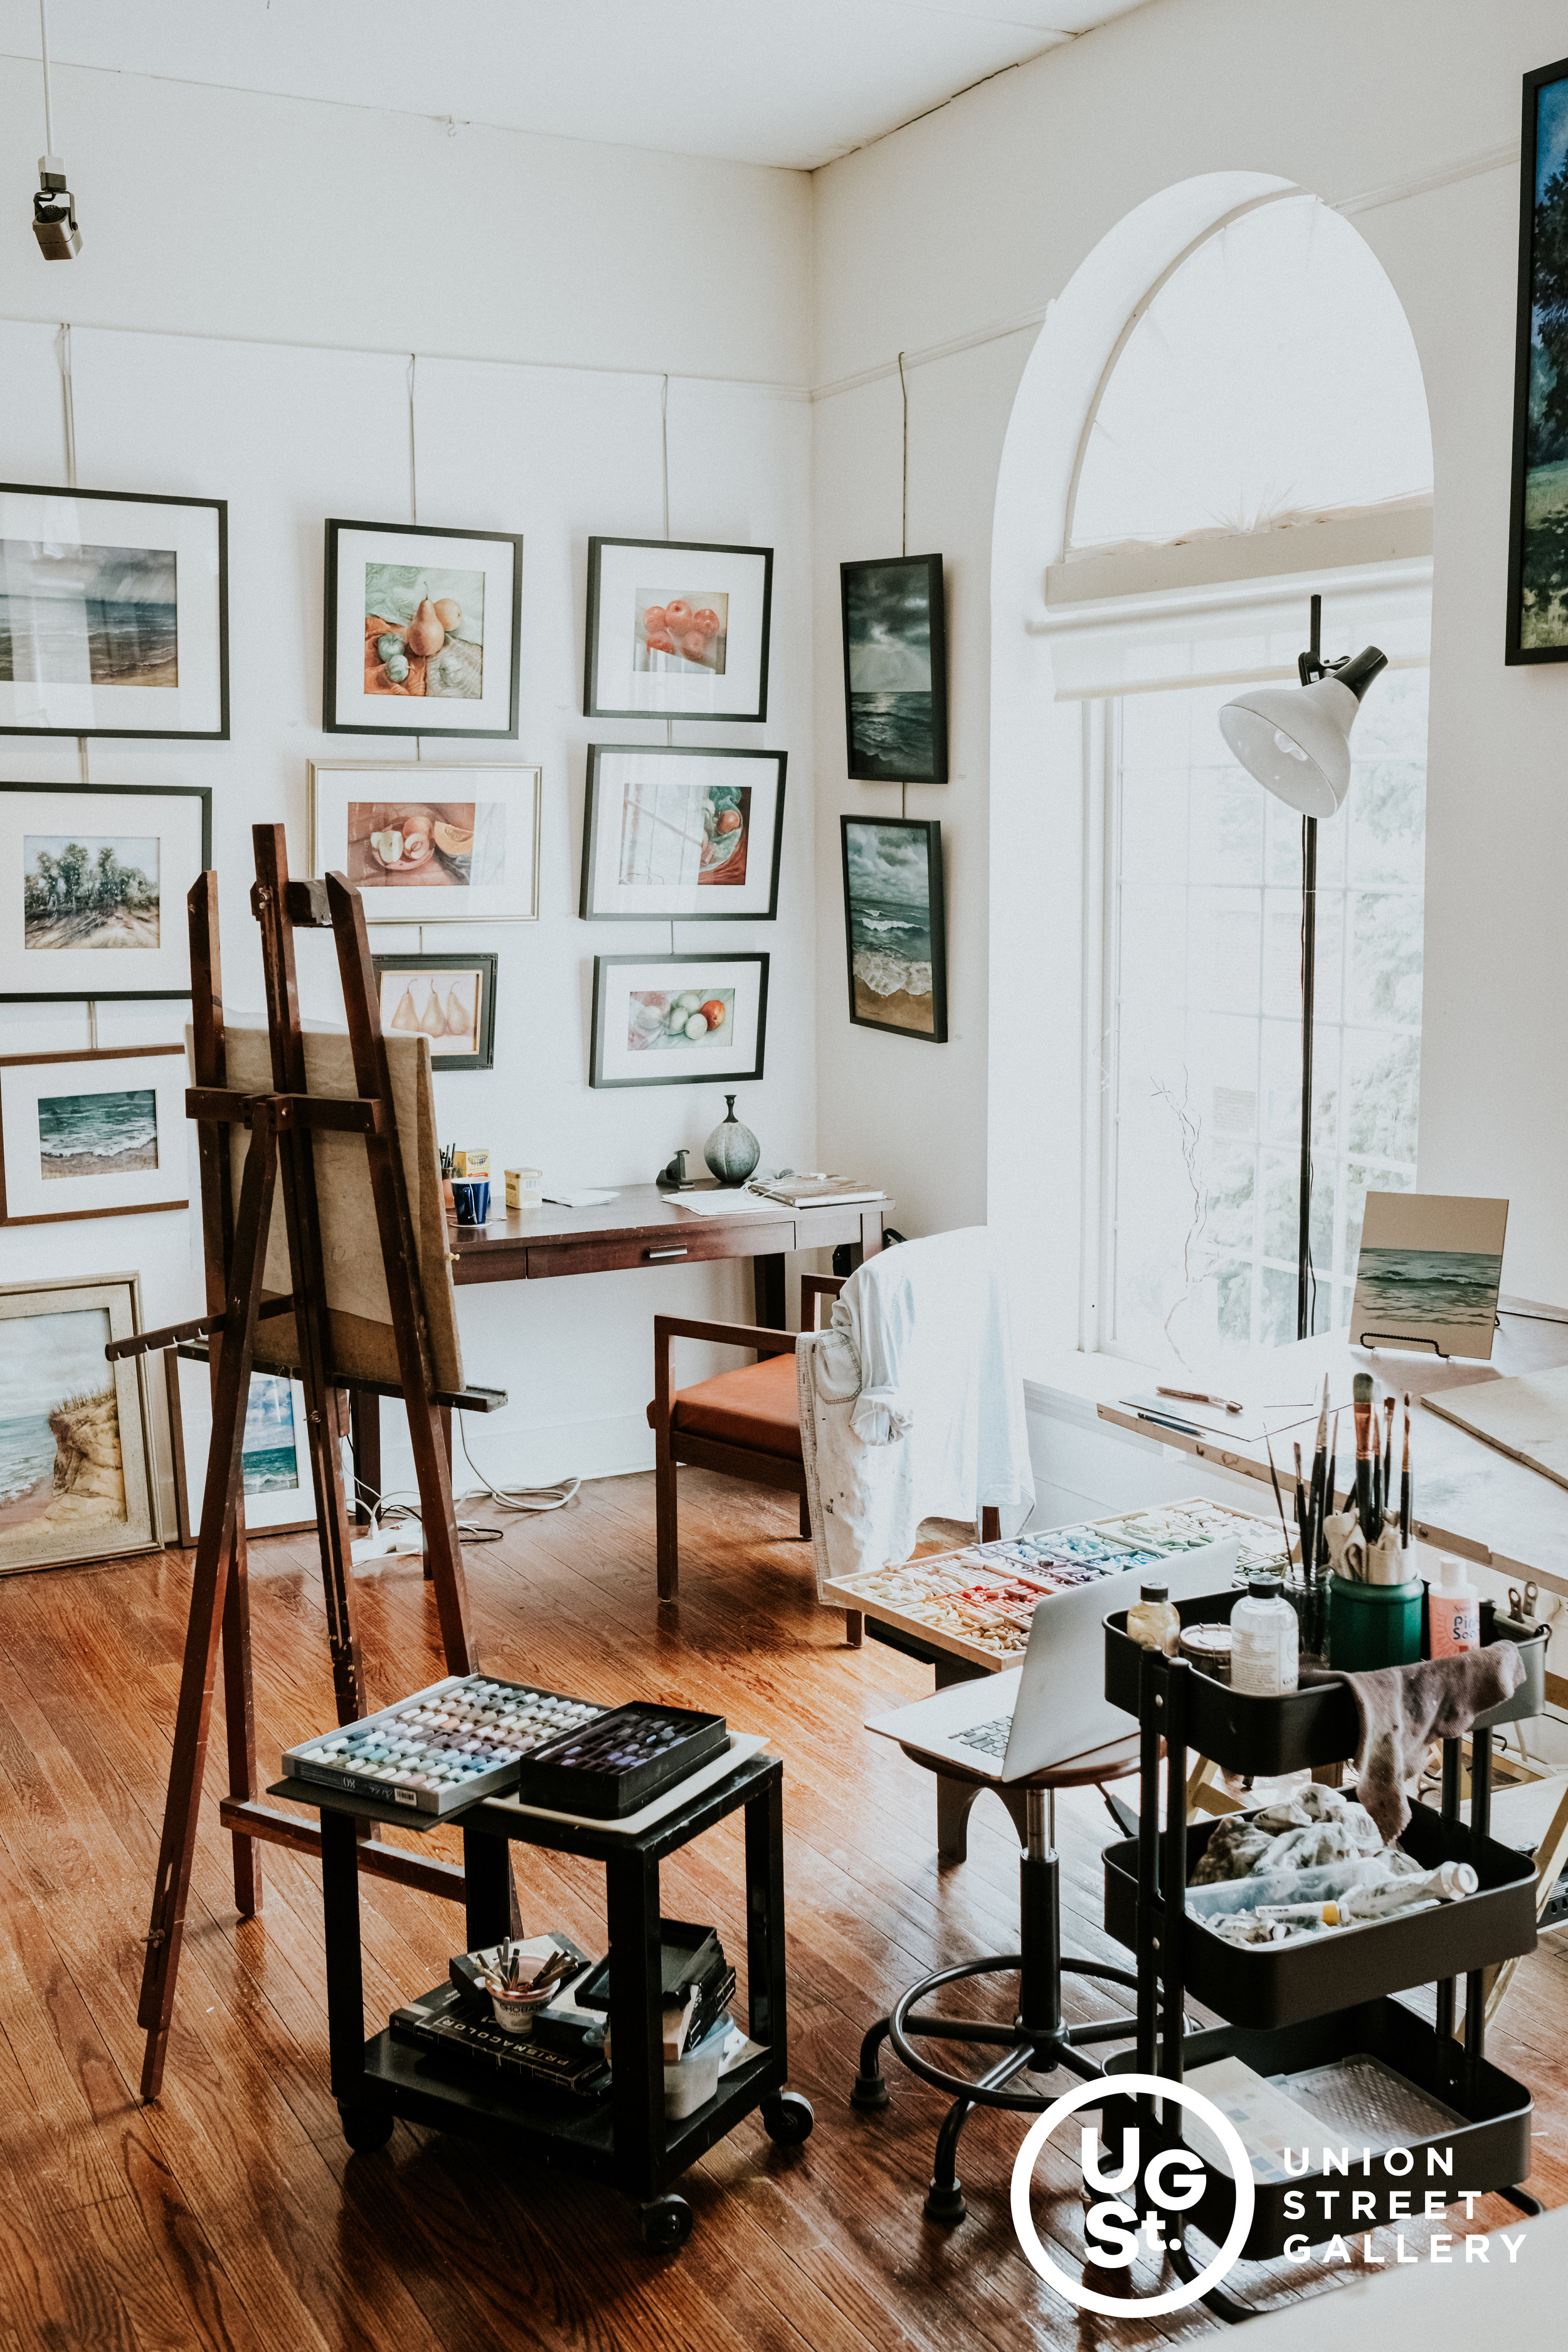 Mary Ann Trzyna's Studio half of a shared space between her and another artist Marikay Peter-Woodlock.